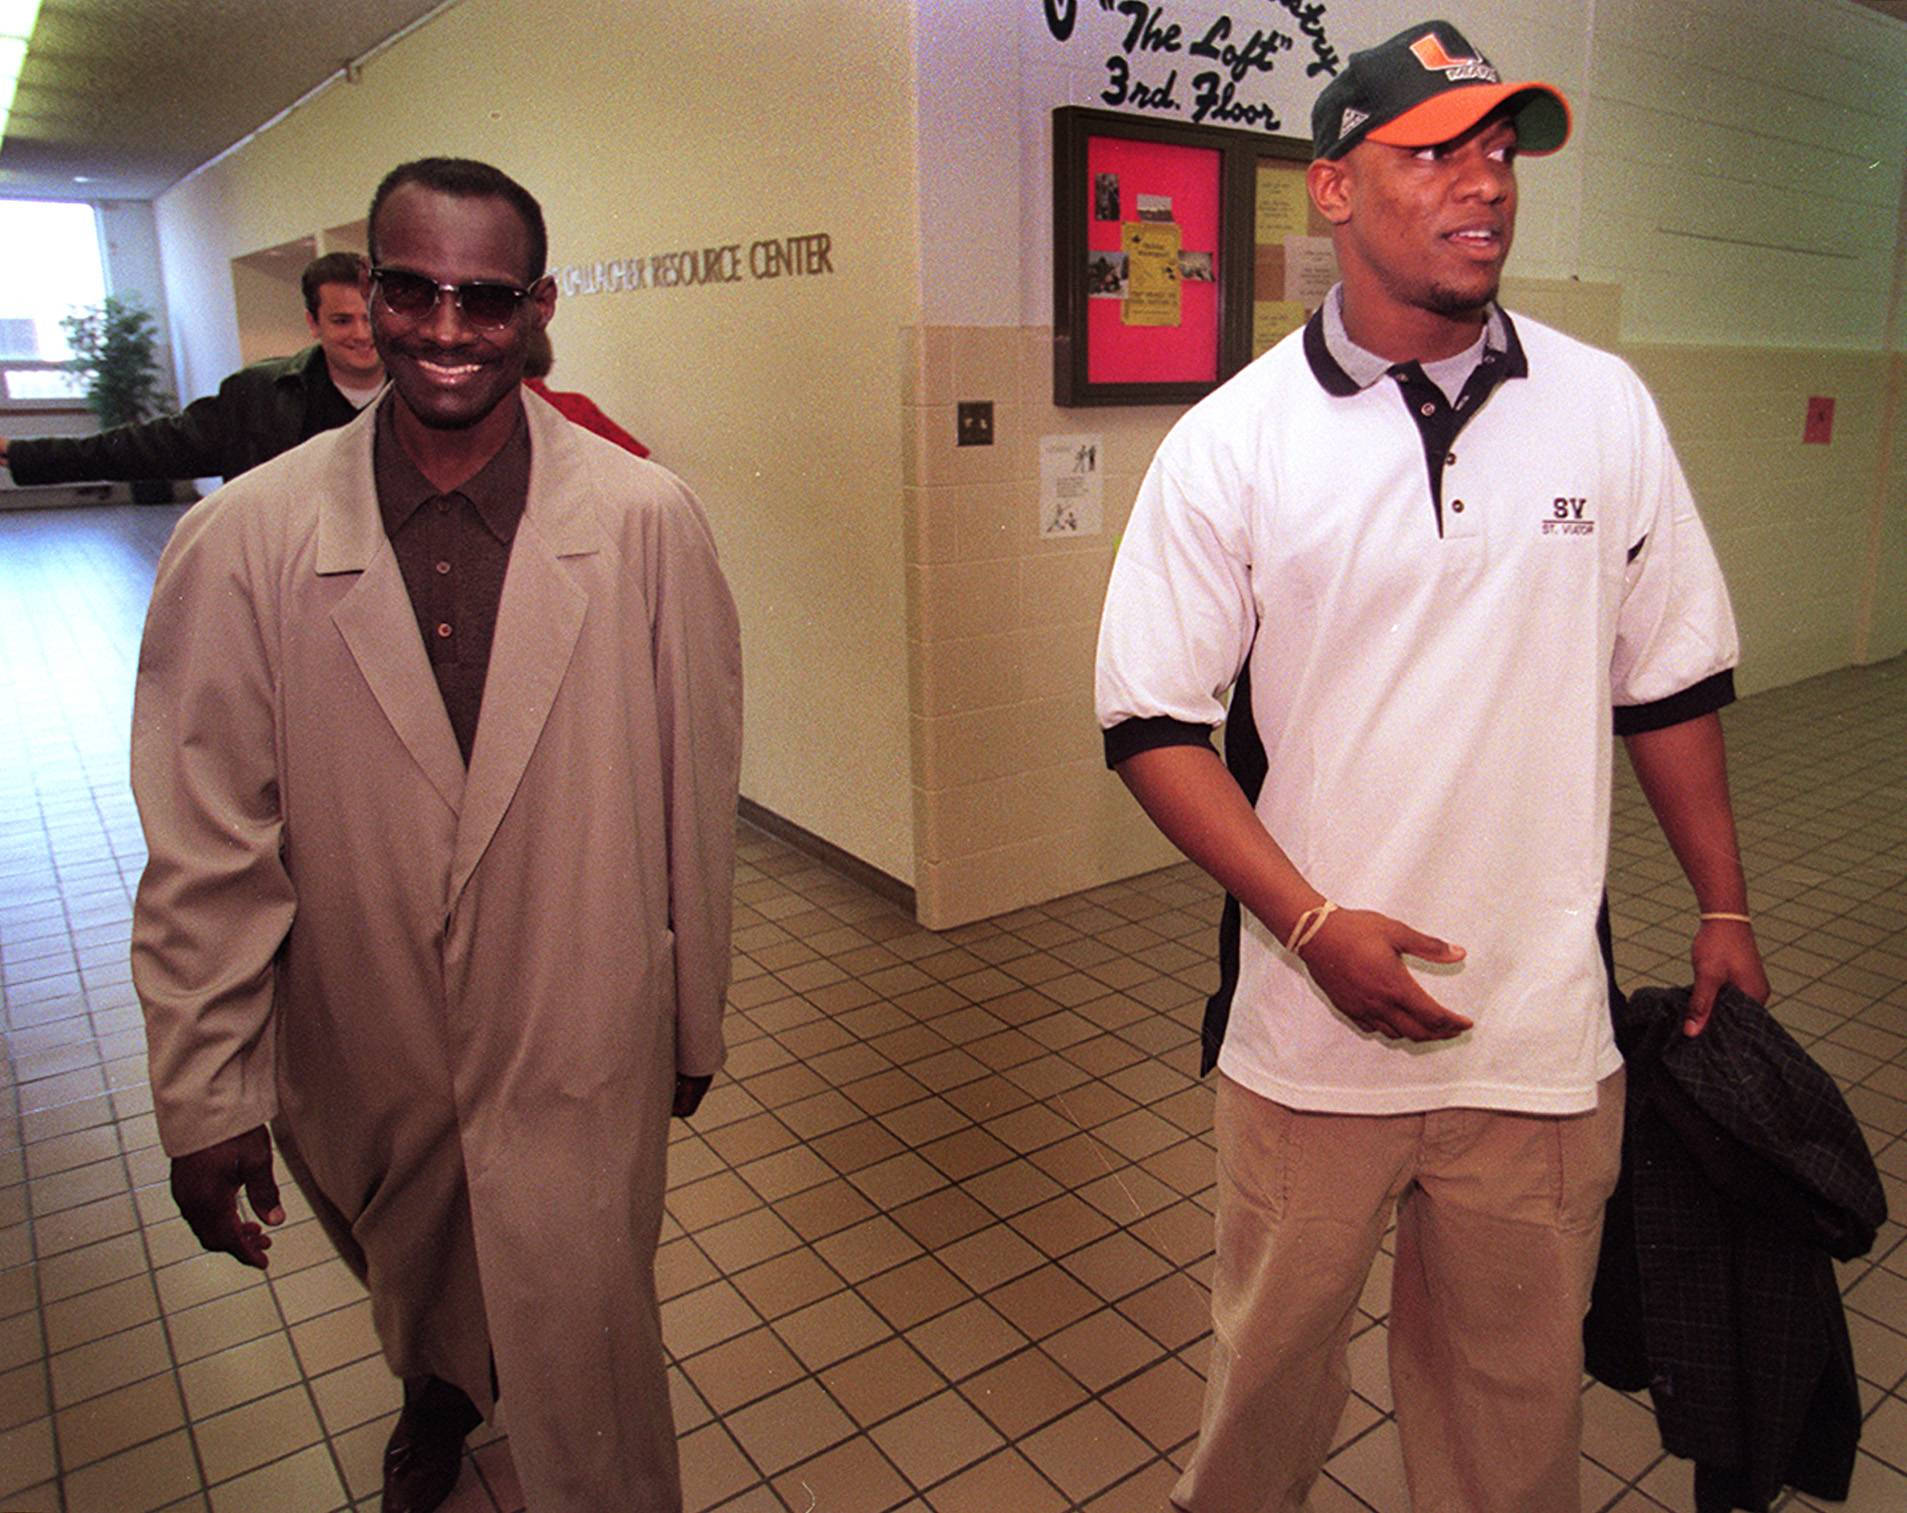 Walter Payton and his son, Jarrett, leave St. Viator High School after a news conference where Jarrett announced his intentions to play college football.